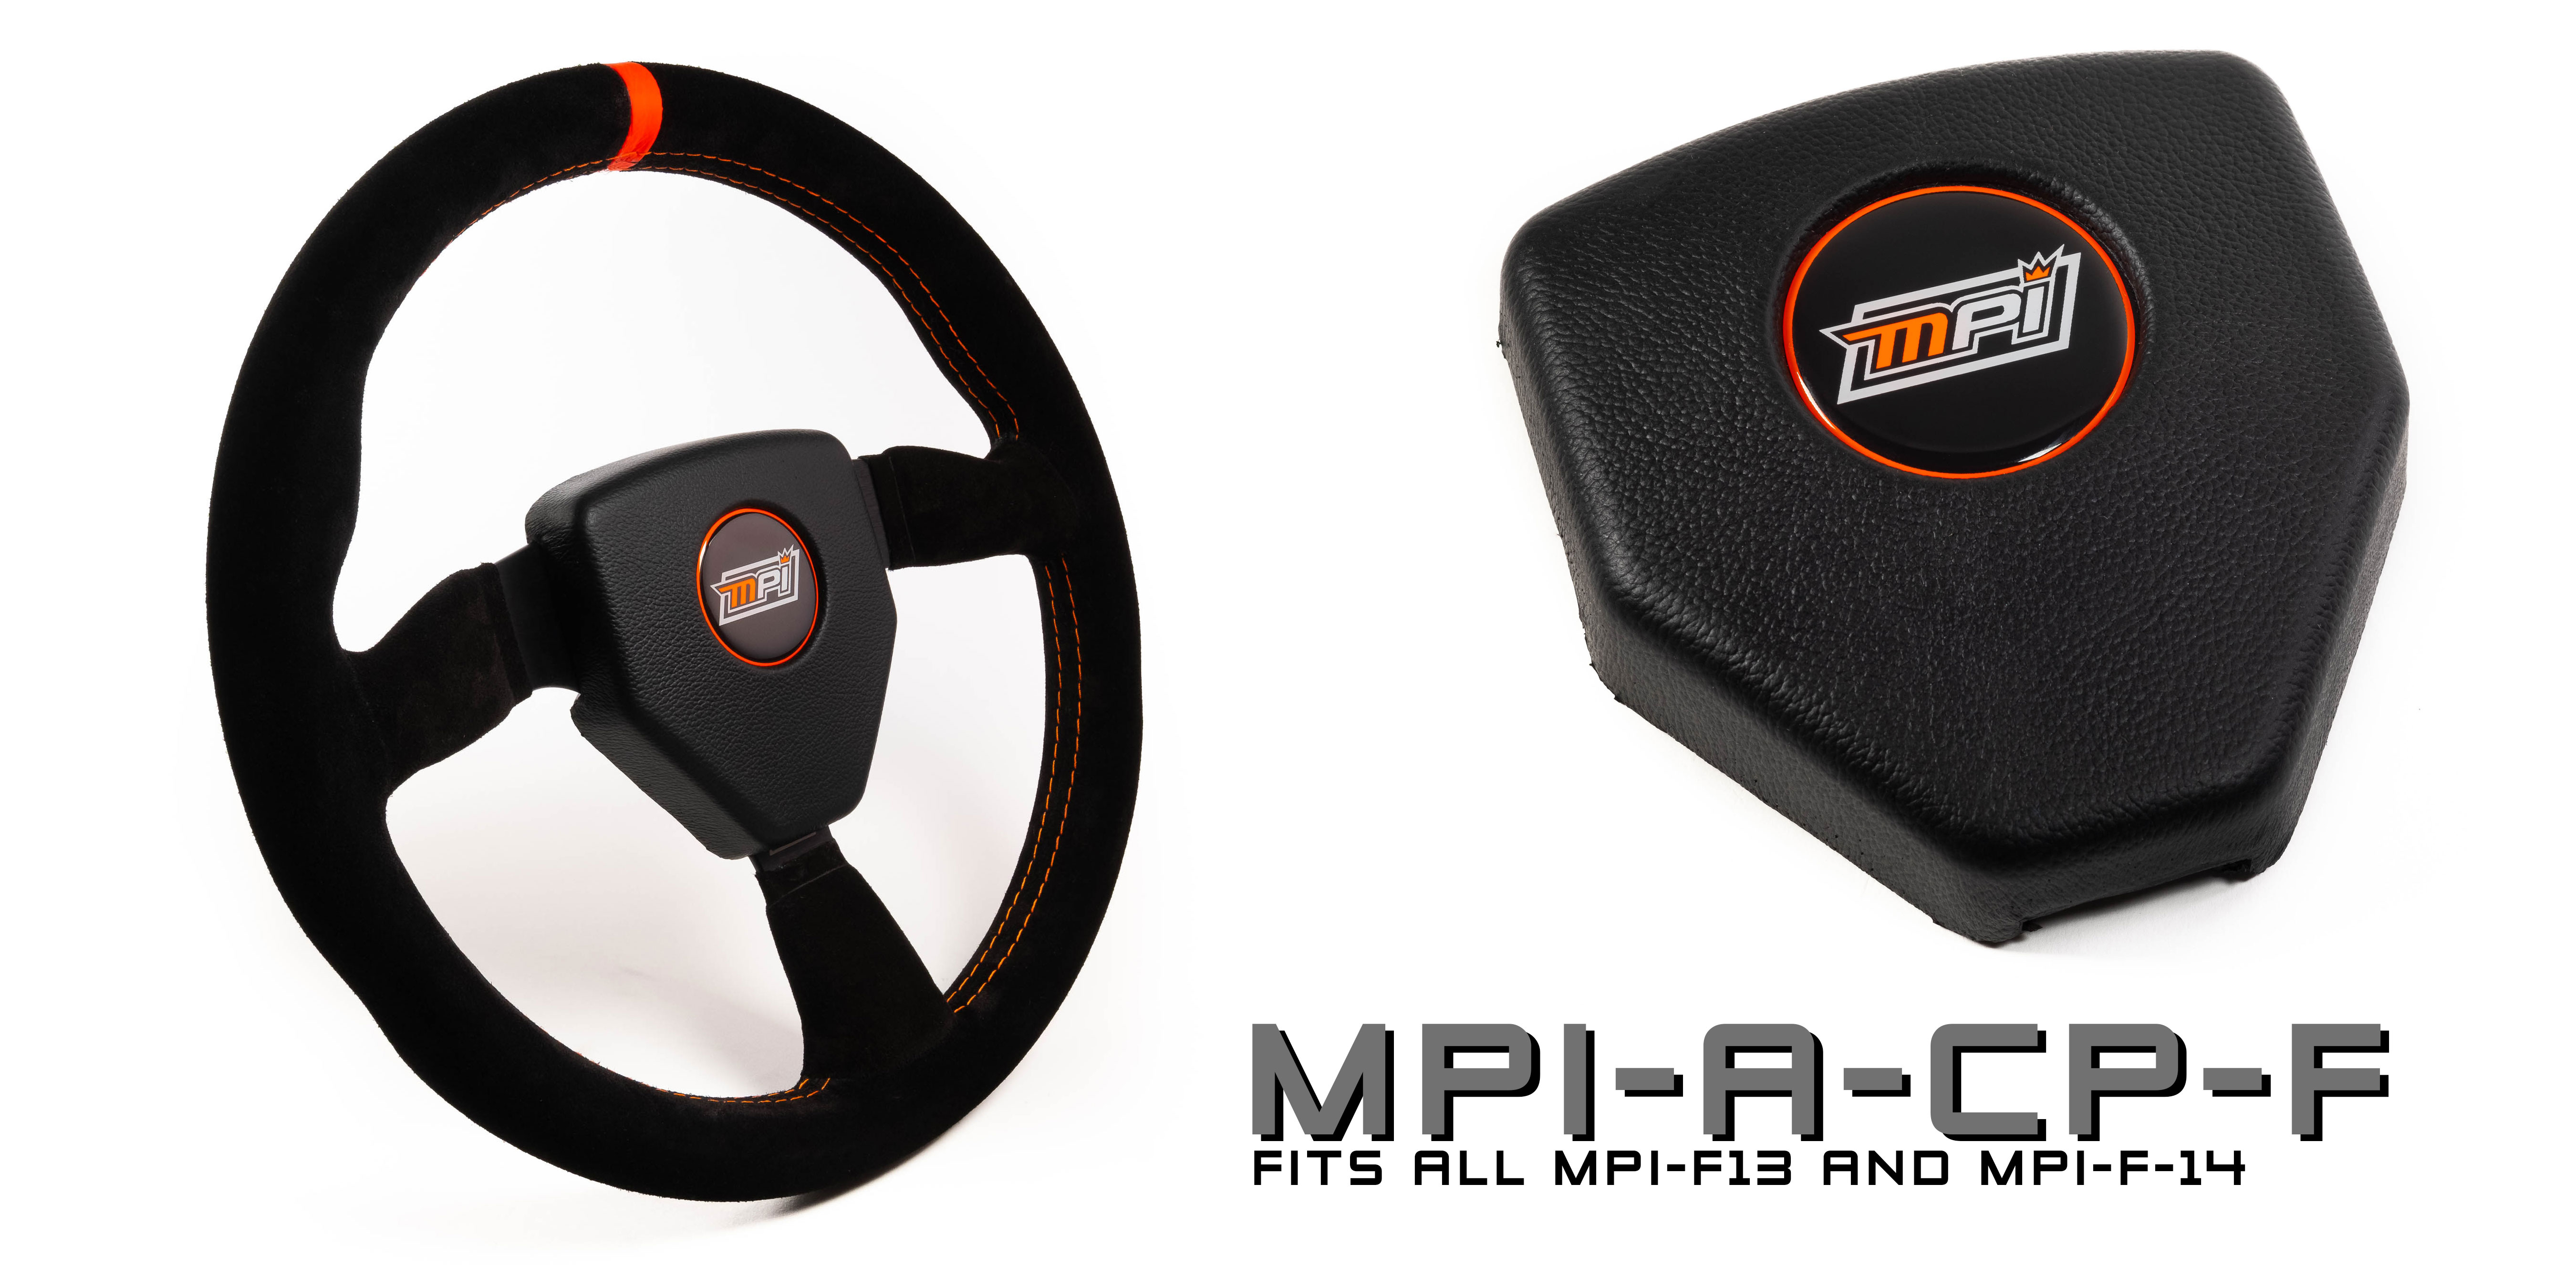 Pro Off Road Racing Concept Wheel Pre-Wired and Ready to Use